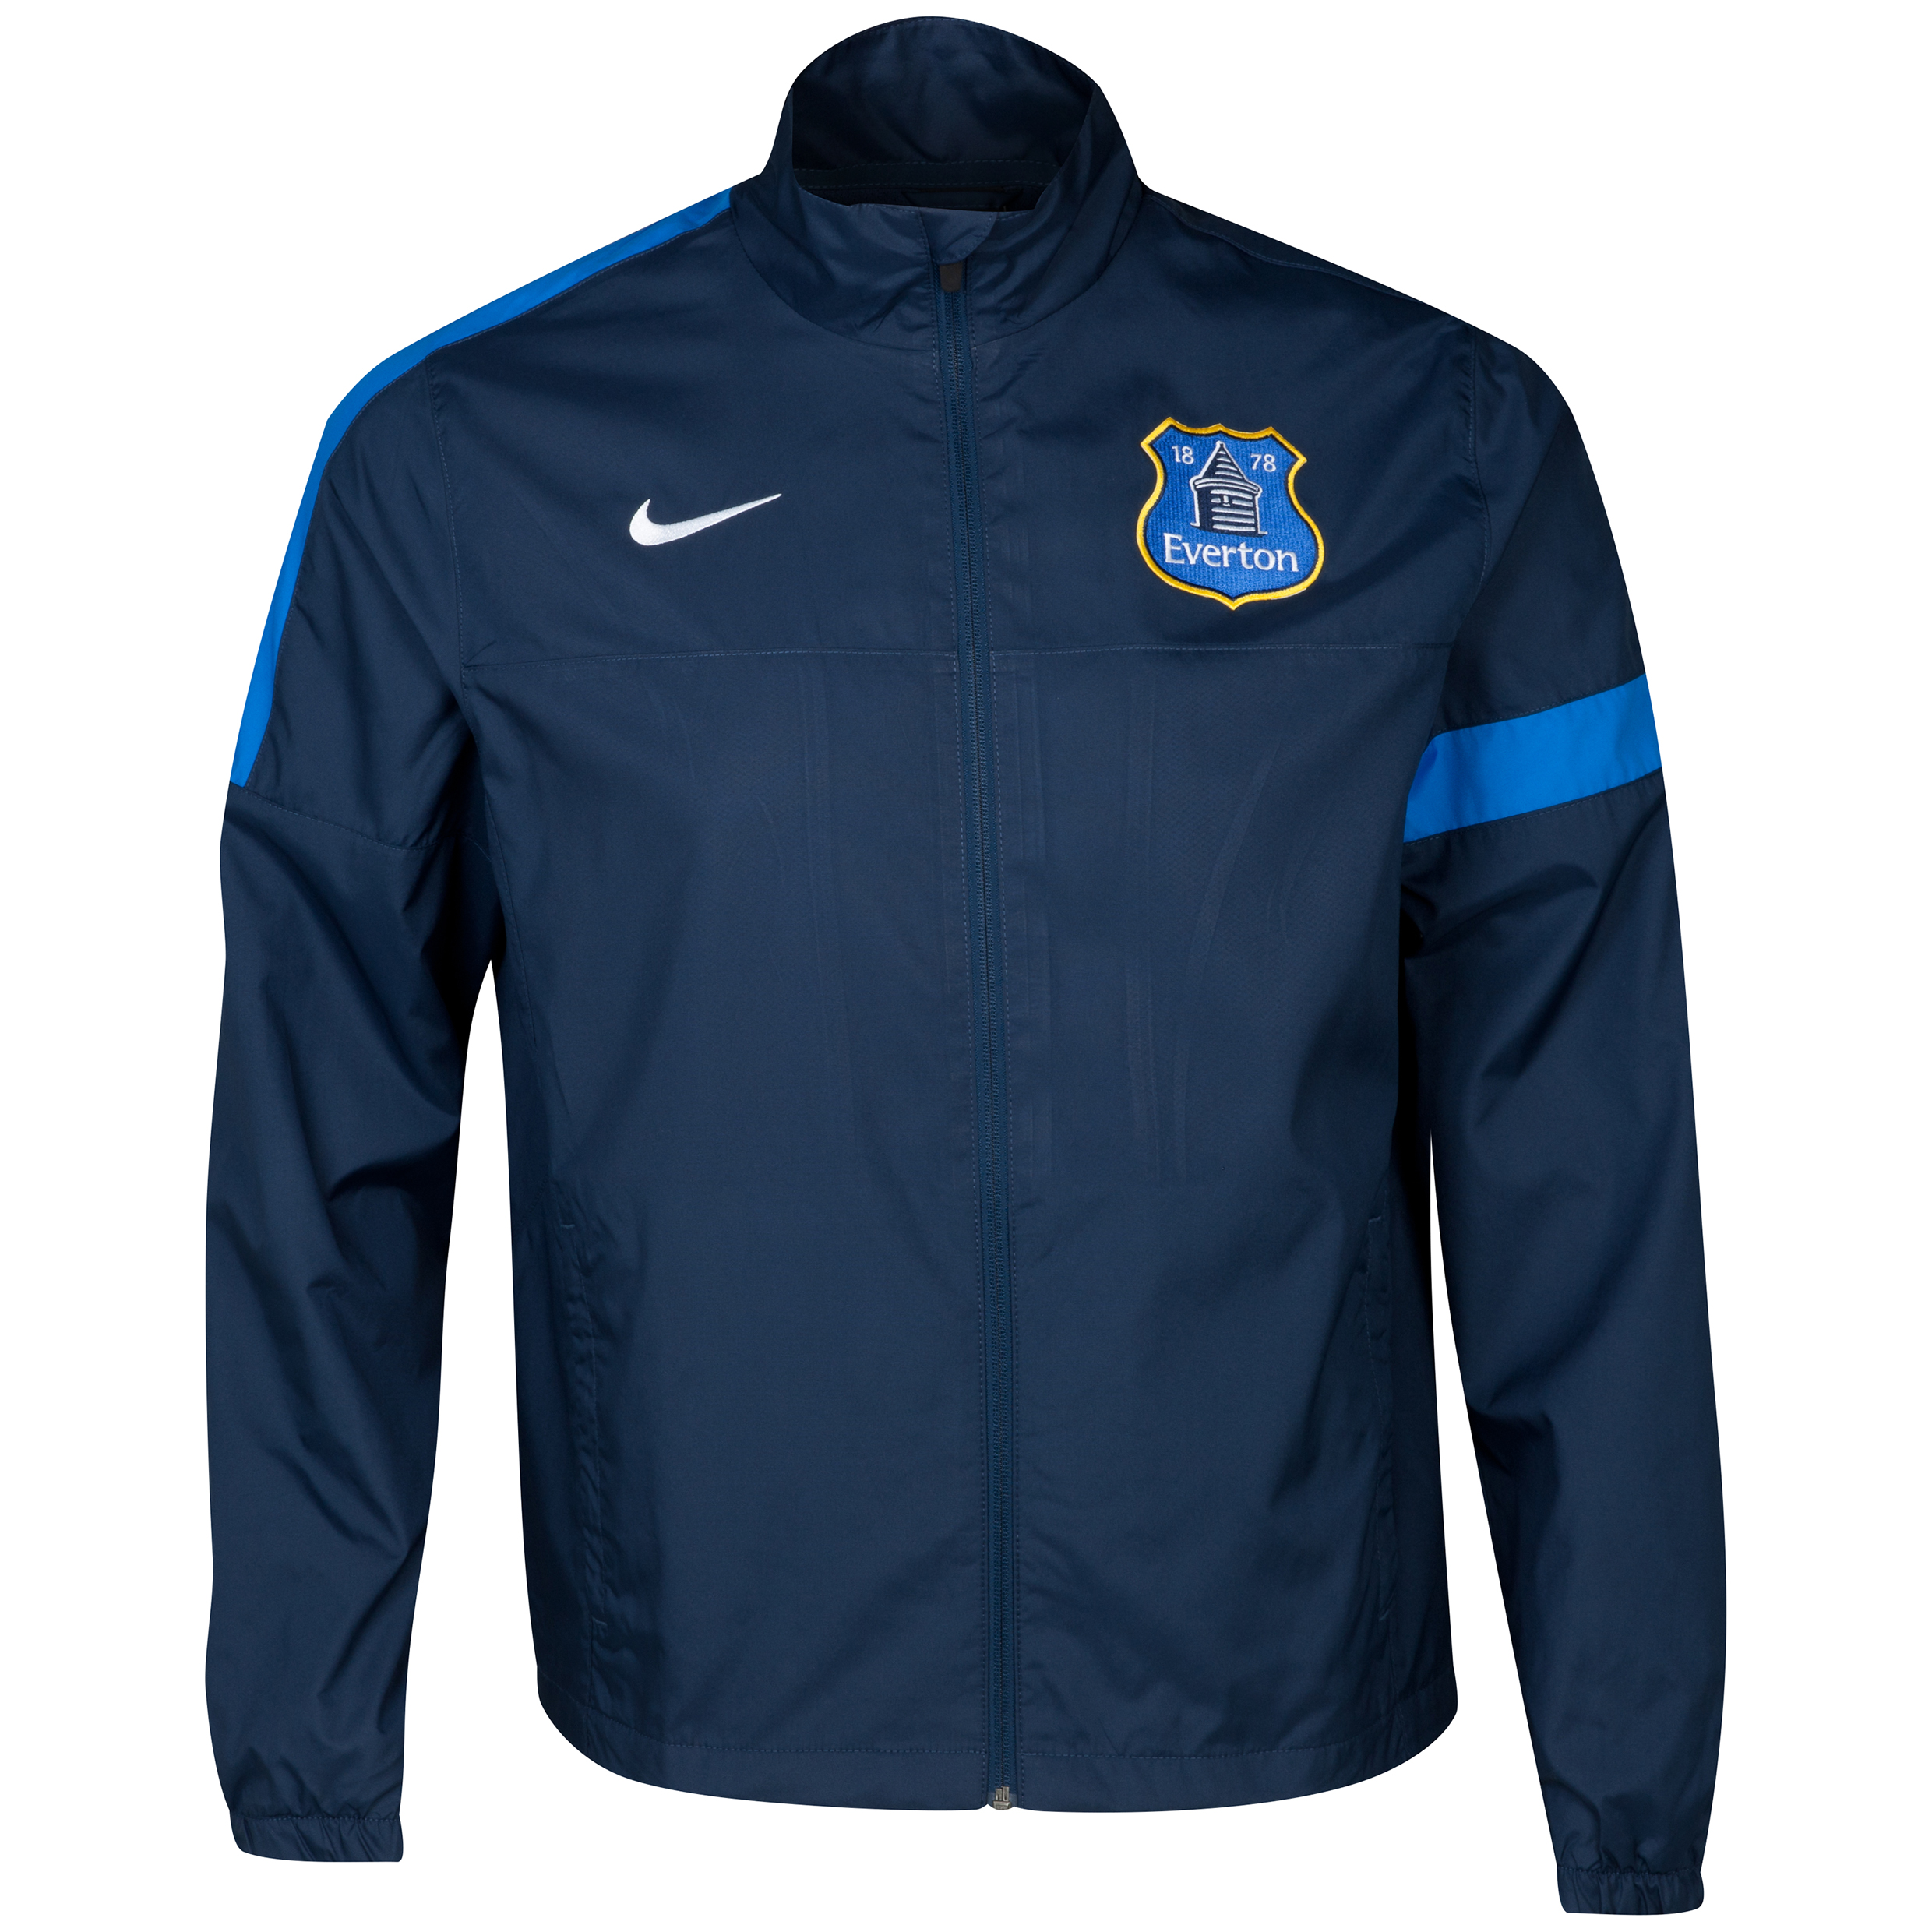 Everton Sideline Track Jacket - Junior Navy